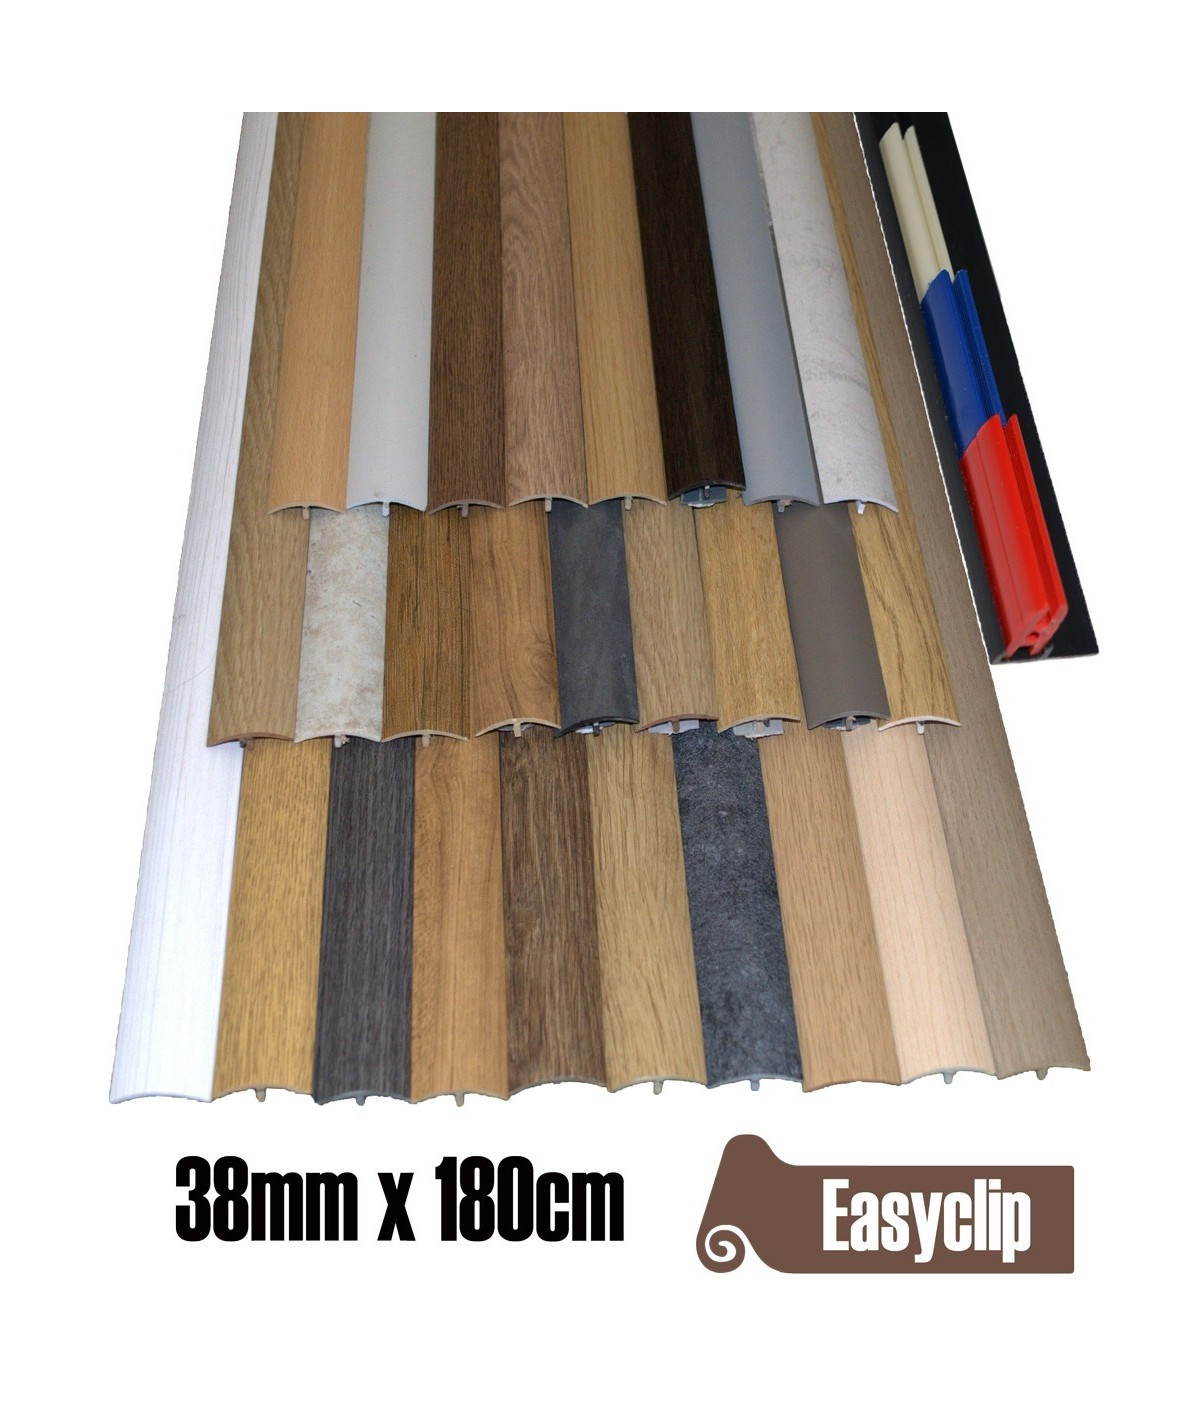 Made to Order 38mm x 180cm  Transition Threshold Strip Door Threshold Multi Purpose Easyclip Adhesive